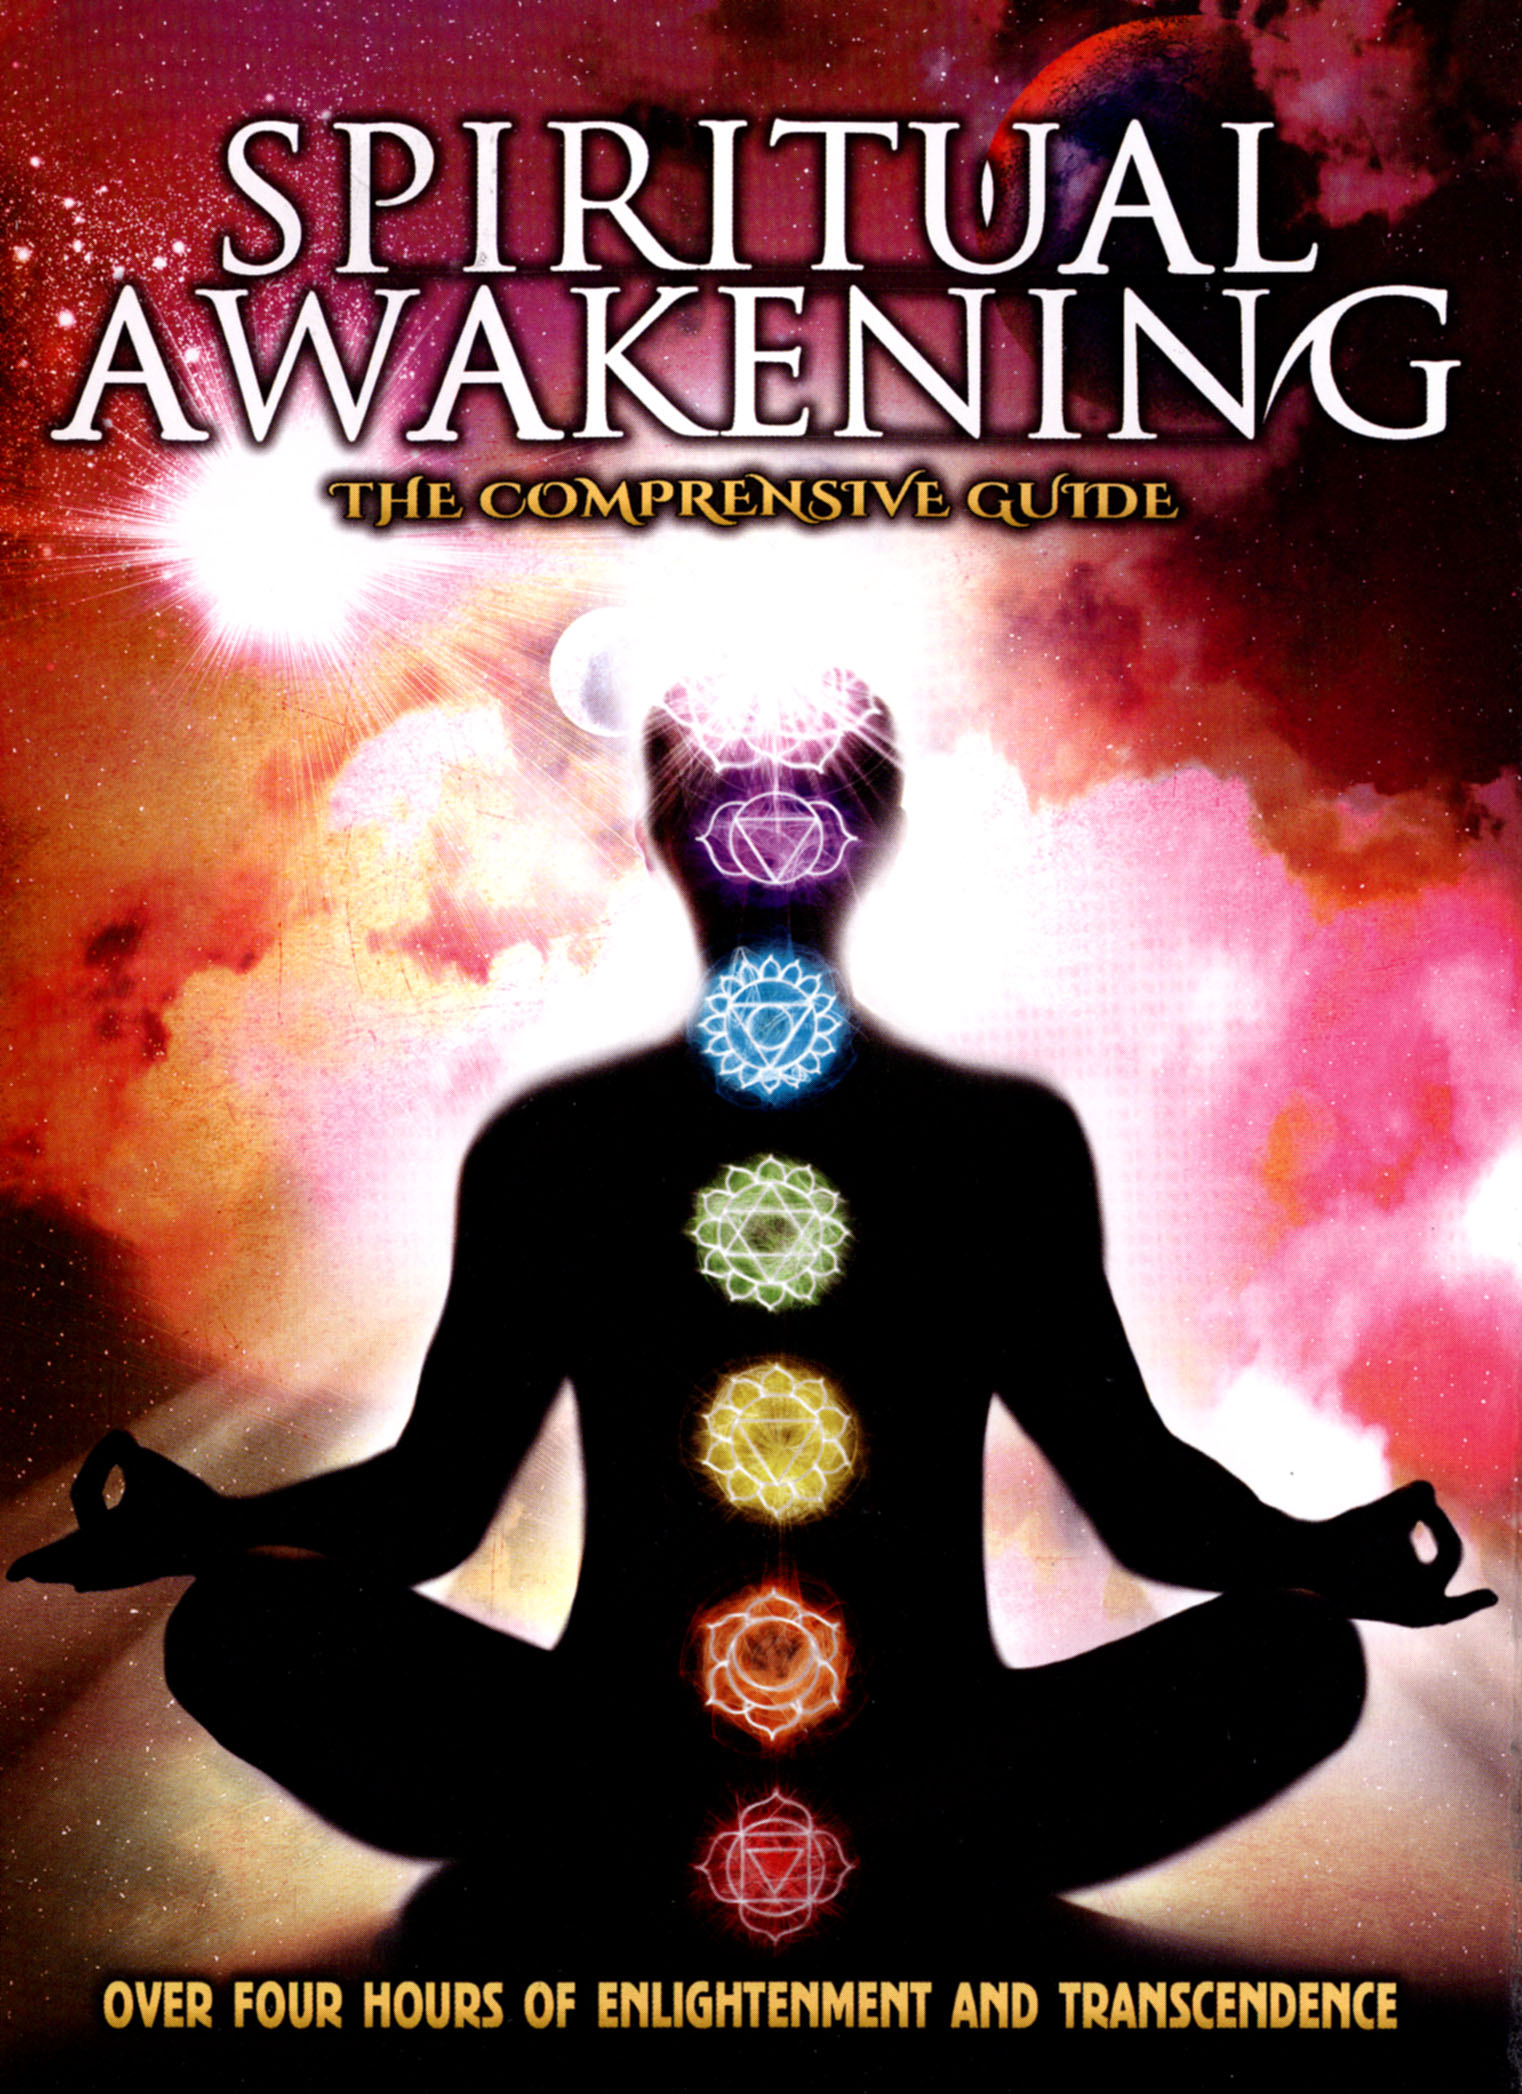 Spiritual Awakening: The Comprehensive Guide